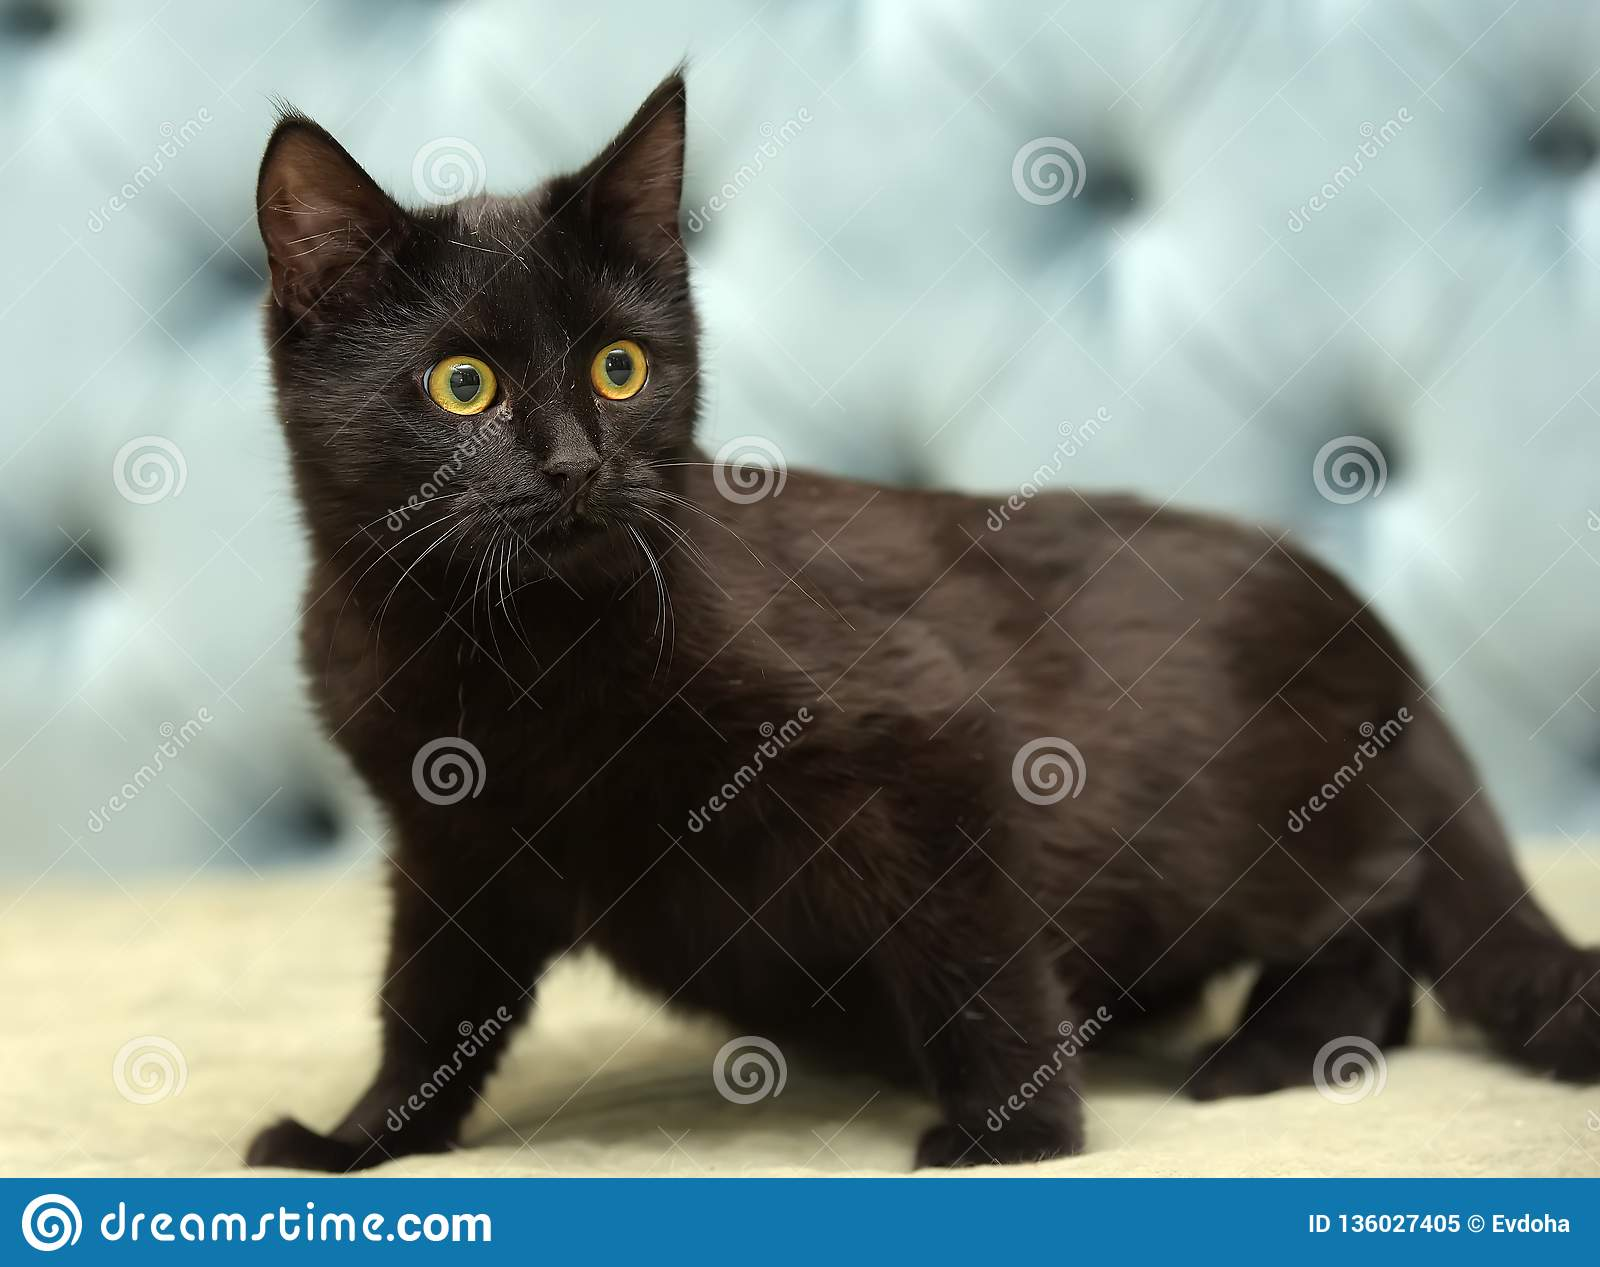 Black shorthair cat with yellow eyes